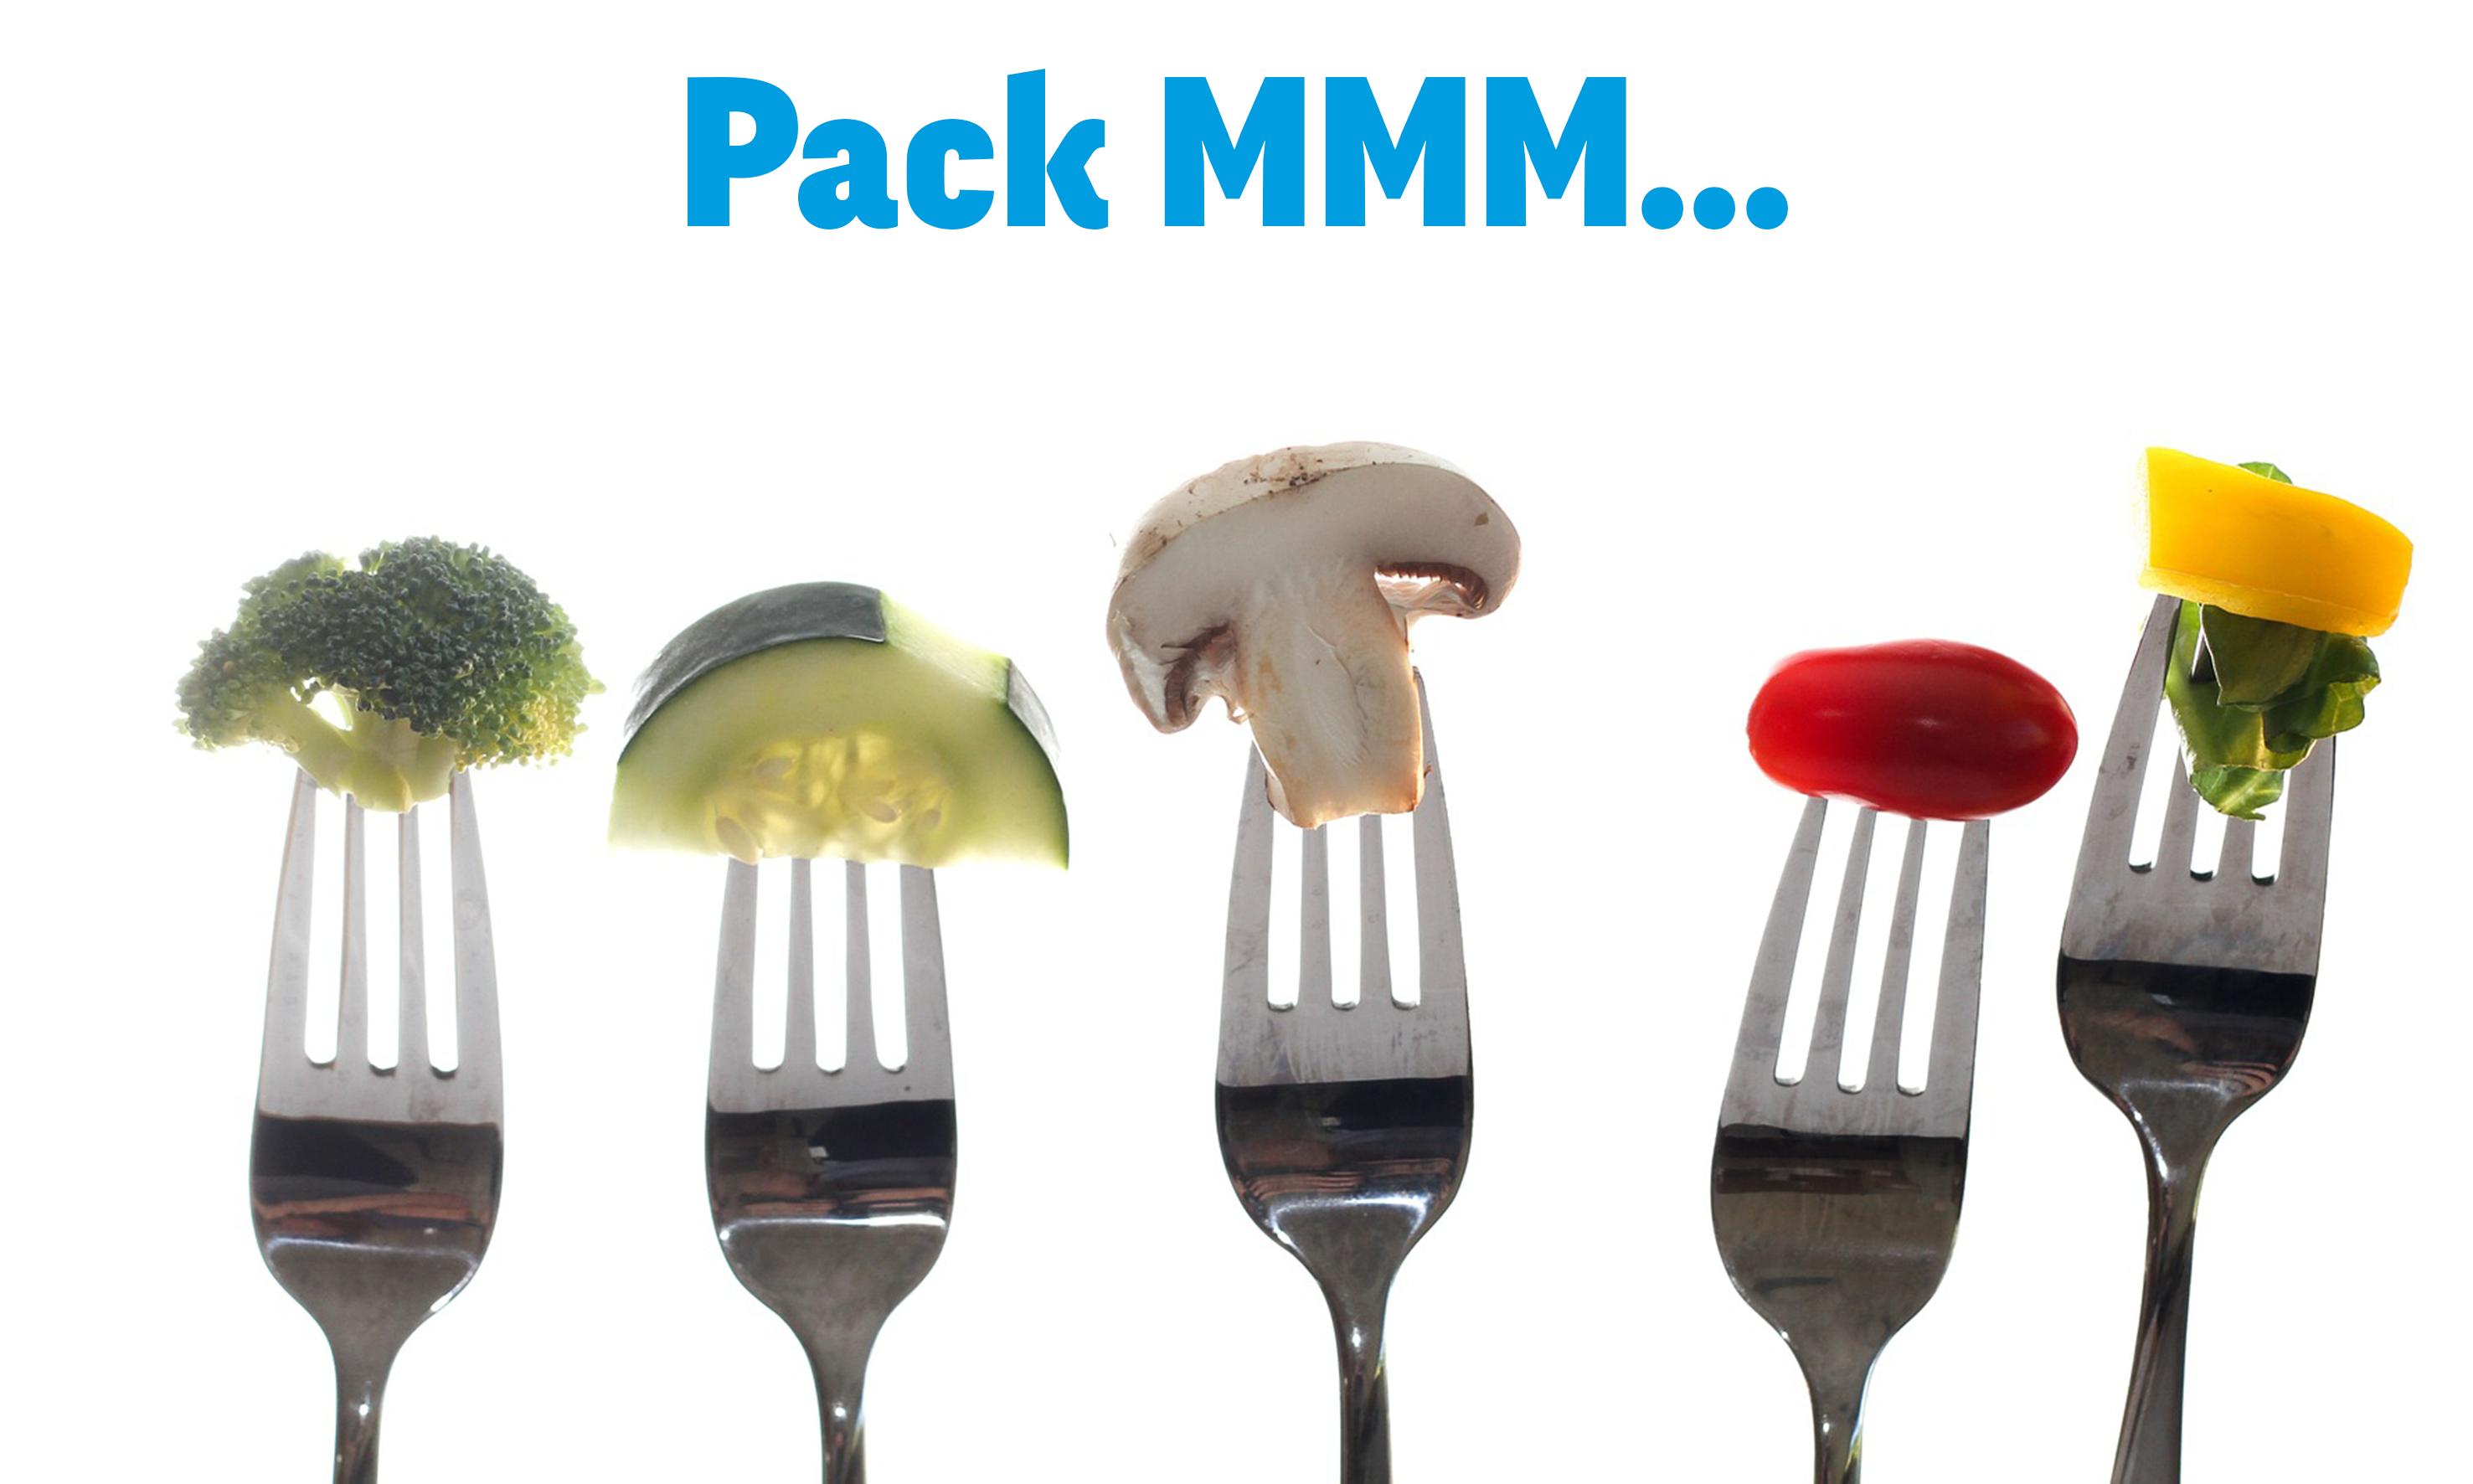 Pack_MMM-1464560352.png